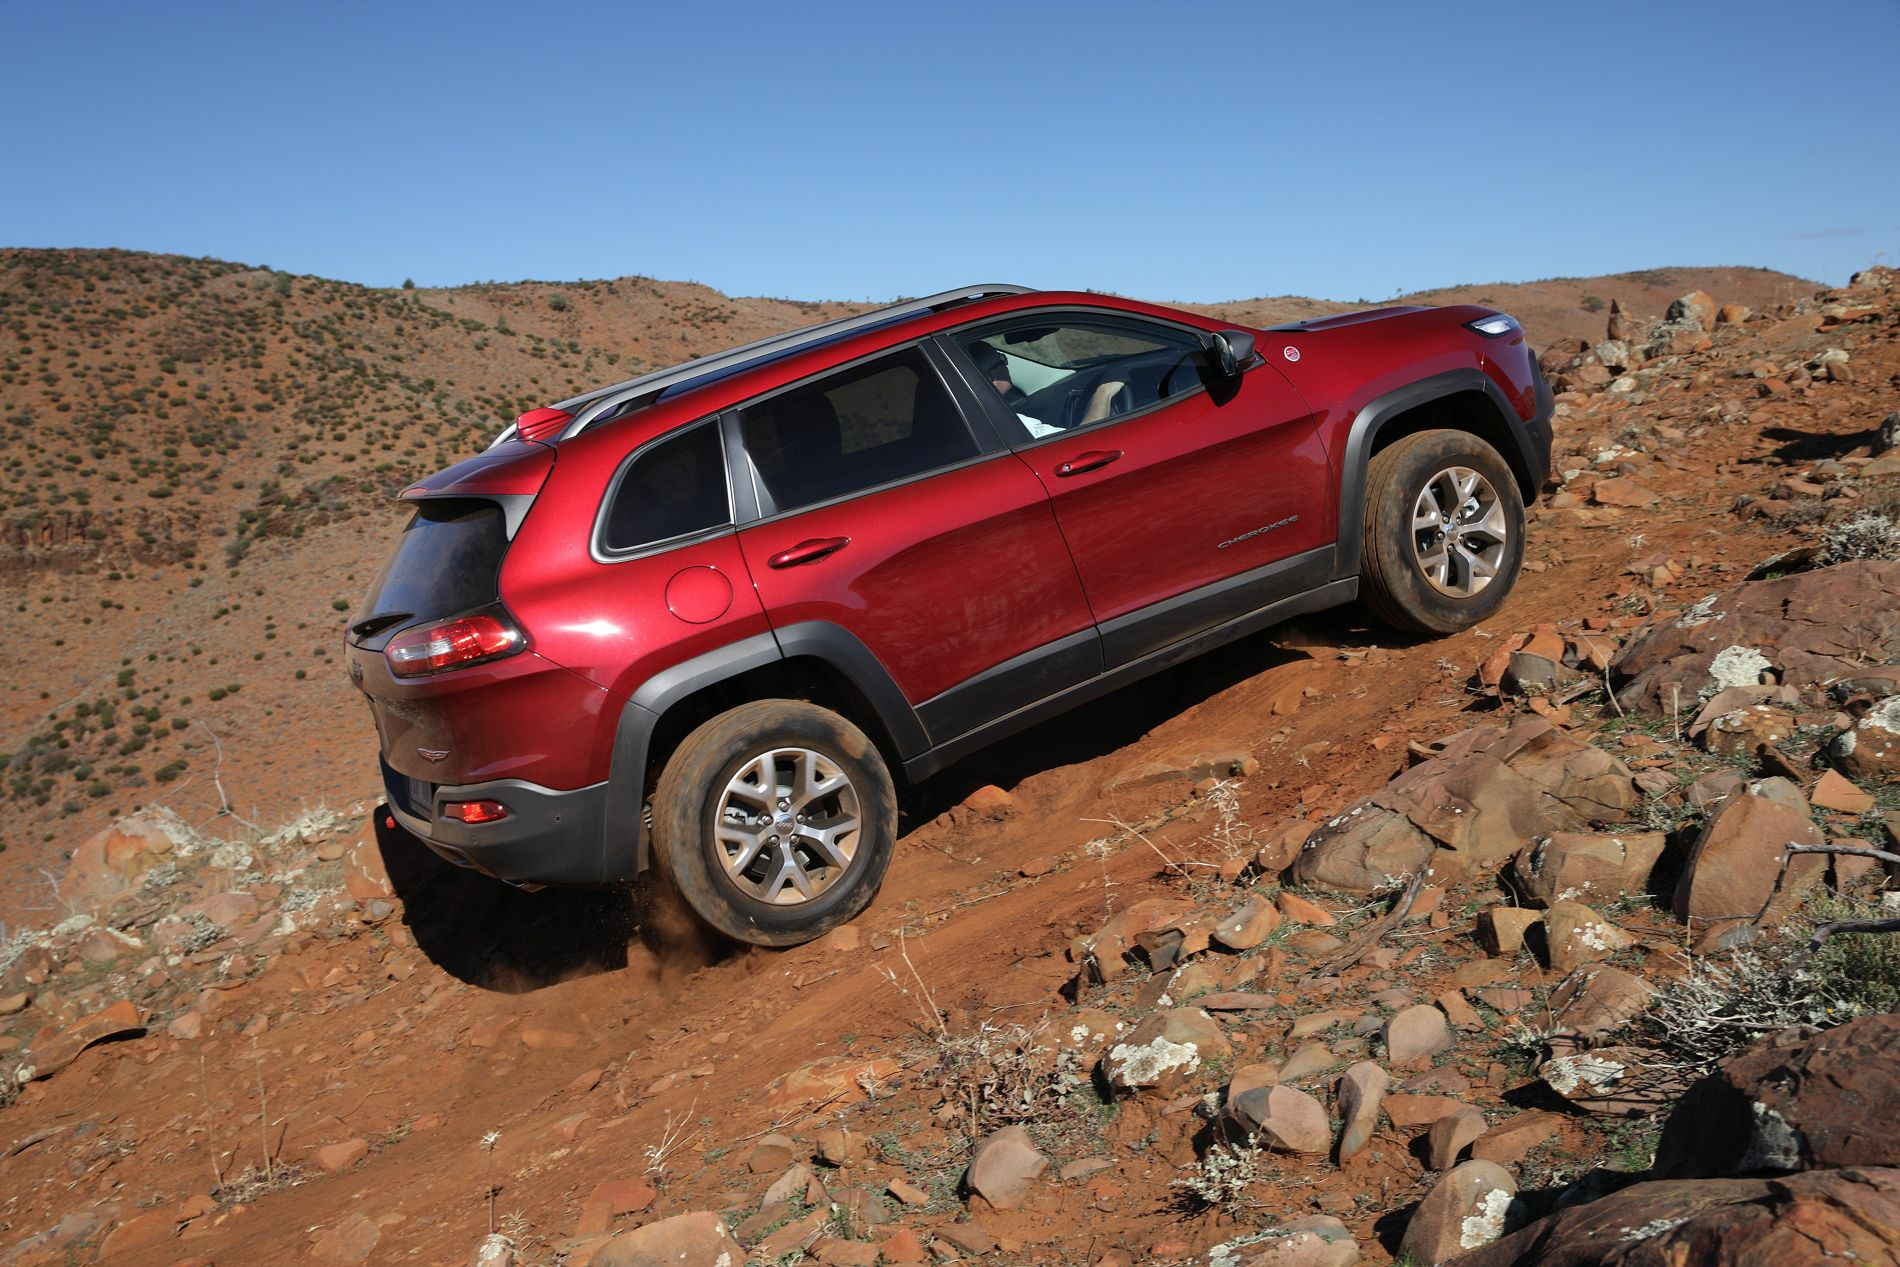 2014 jeep cherokee trailhawk review off road caradvice. Cars Review. Best American Auto & Cars Review